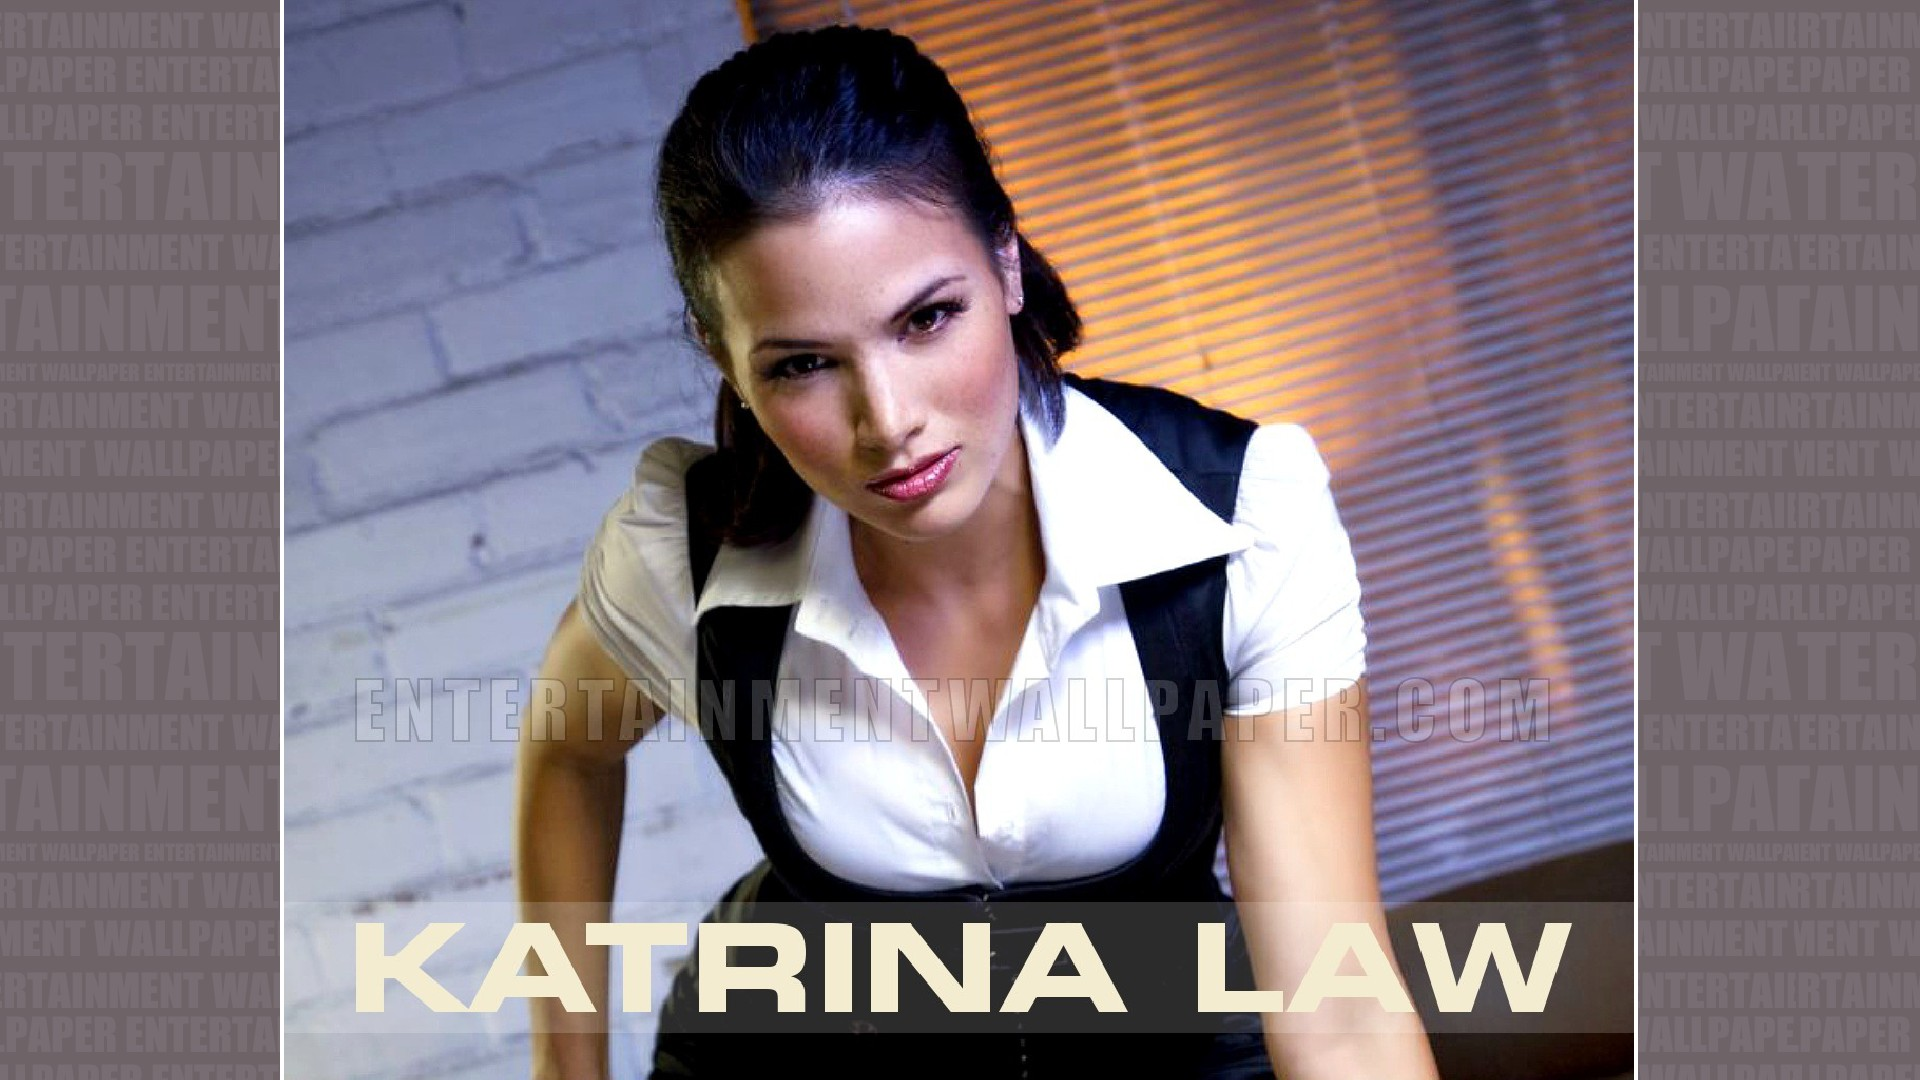 Katrina Law Wallpaper - Original size, download now.